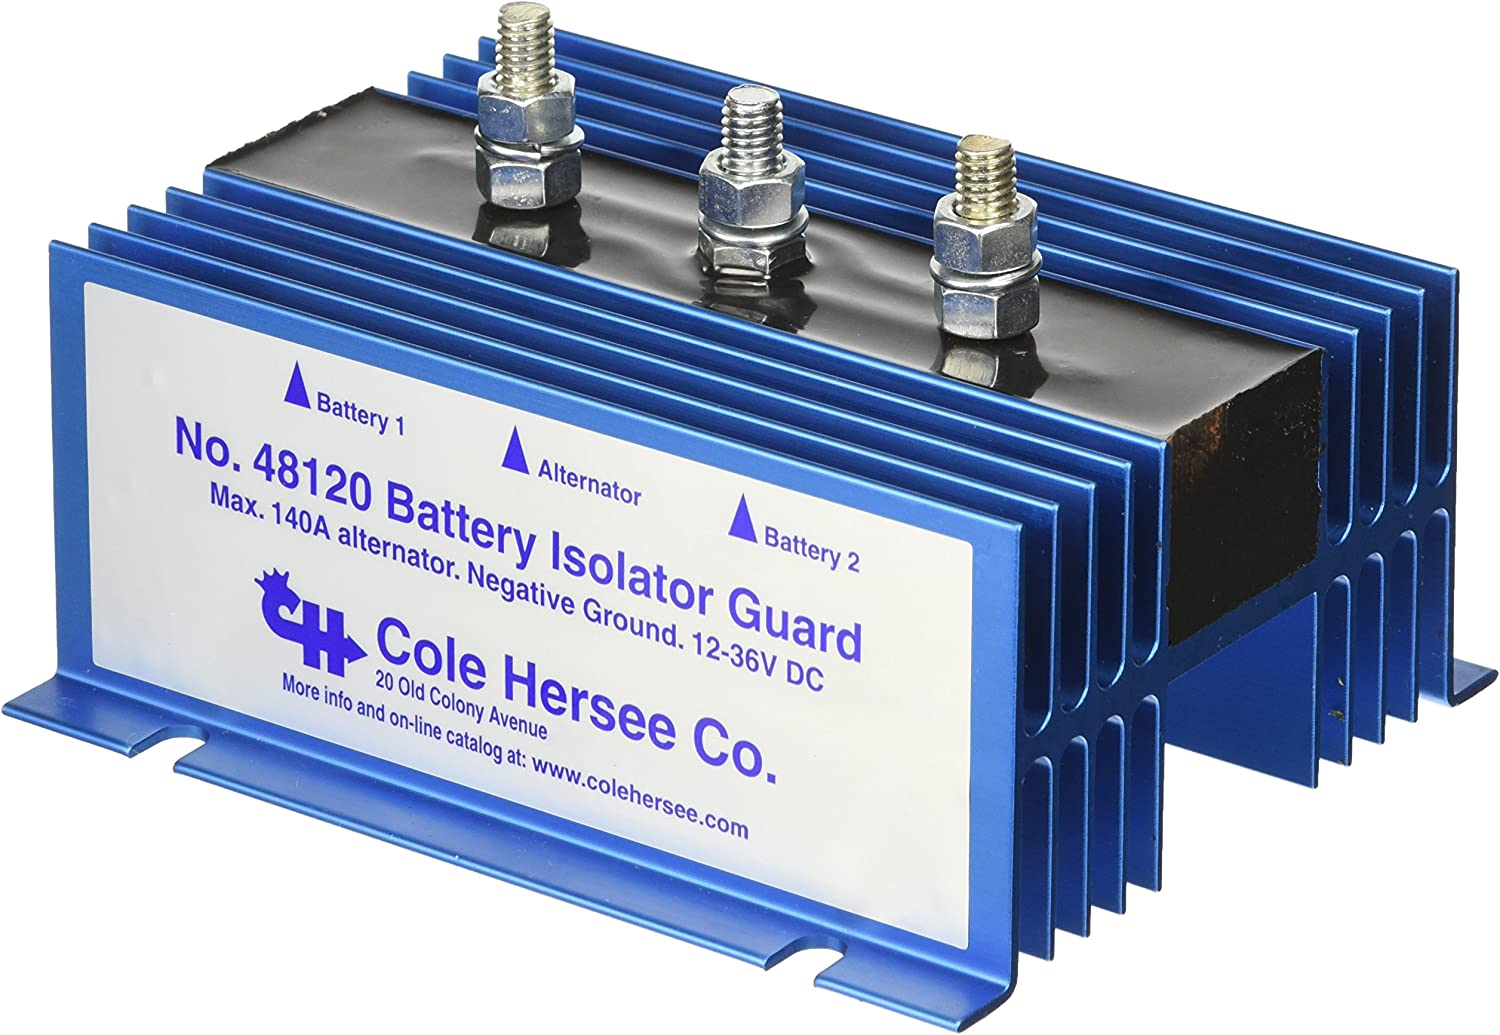 Amazon.com: Cole Hersee 48120 Battery Isolator: Automotive | Battery Isolator 48160 Wiring Diagram |  | Amazon.com